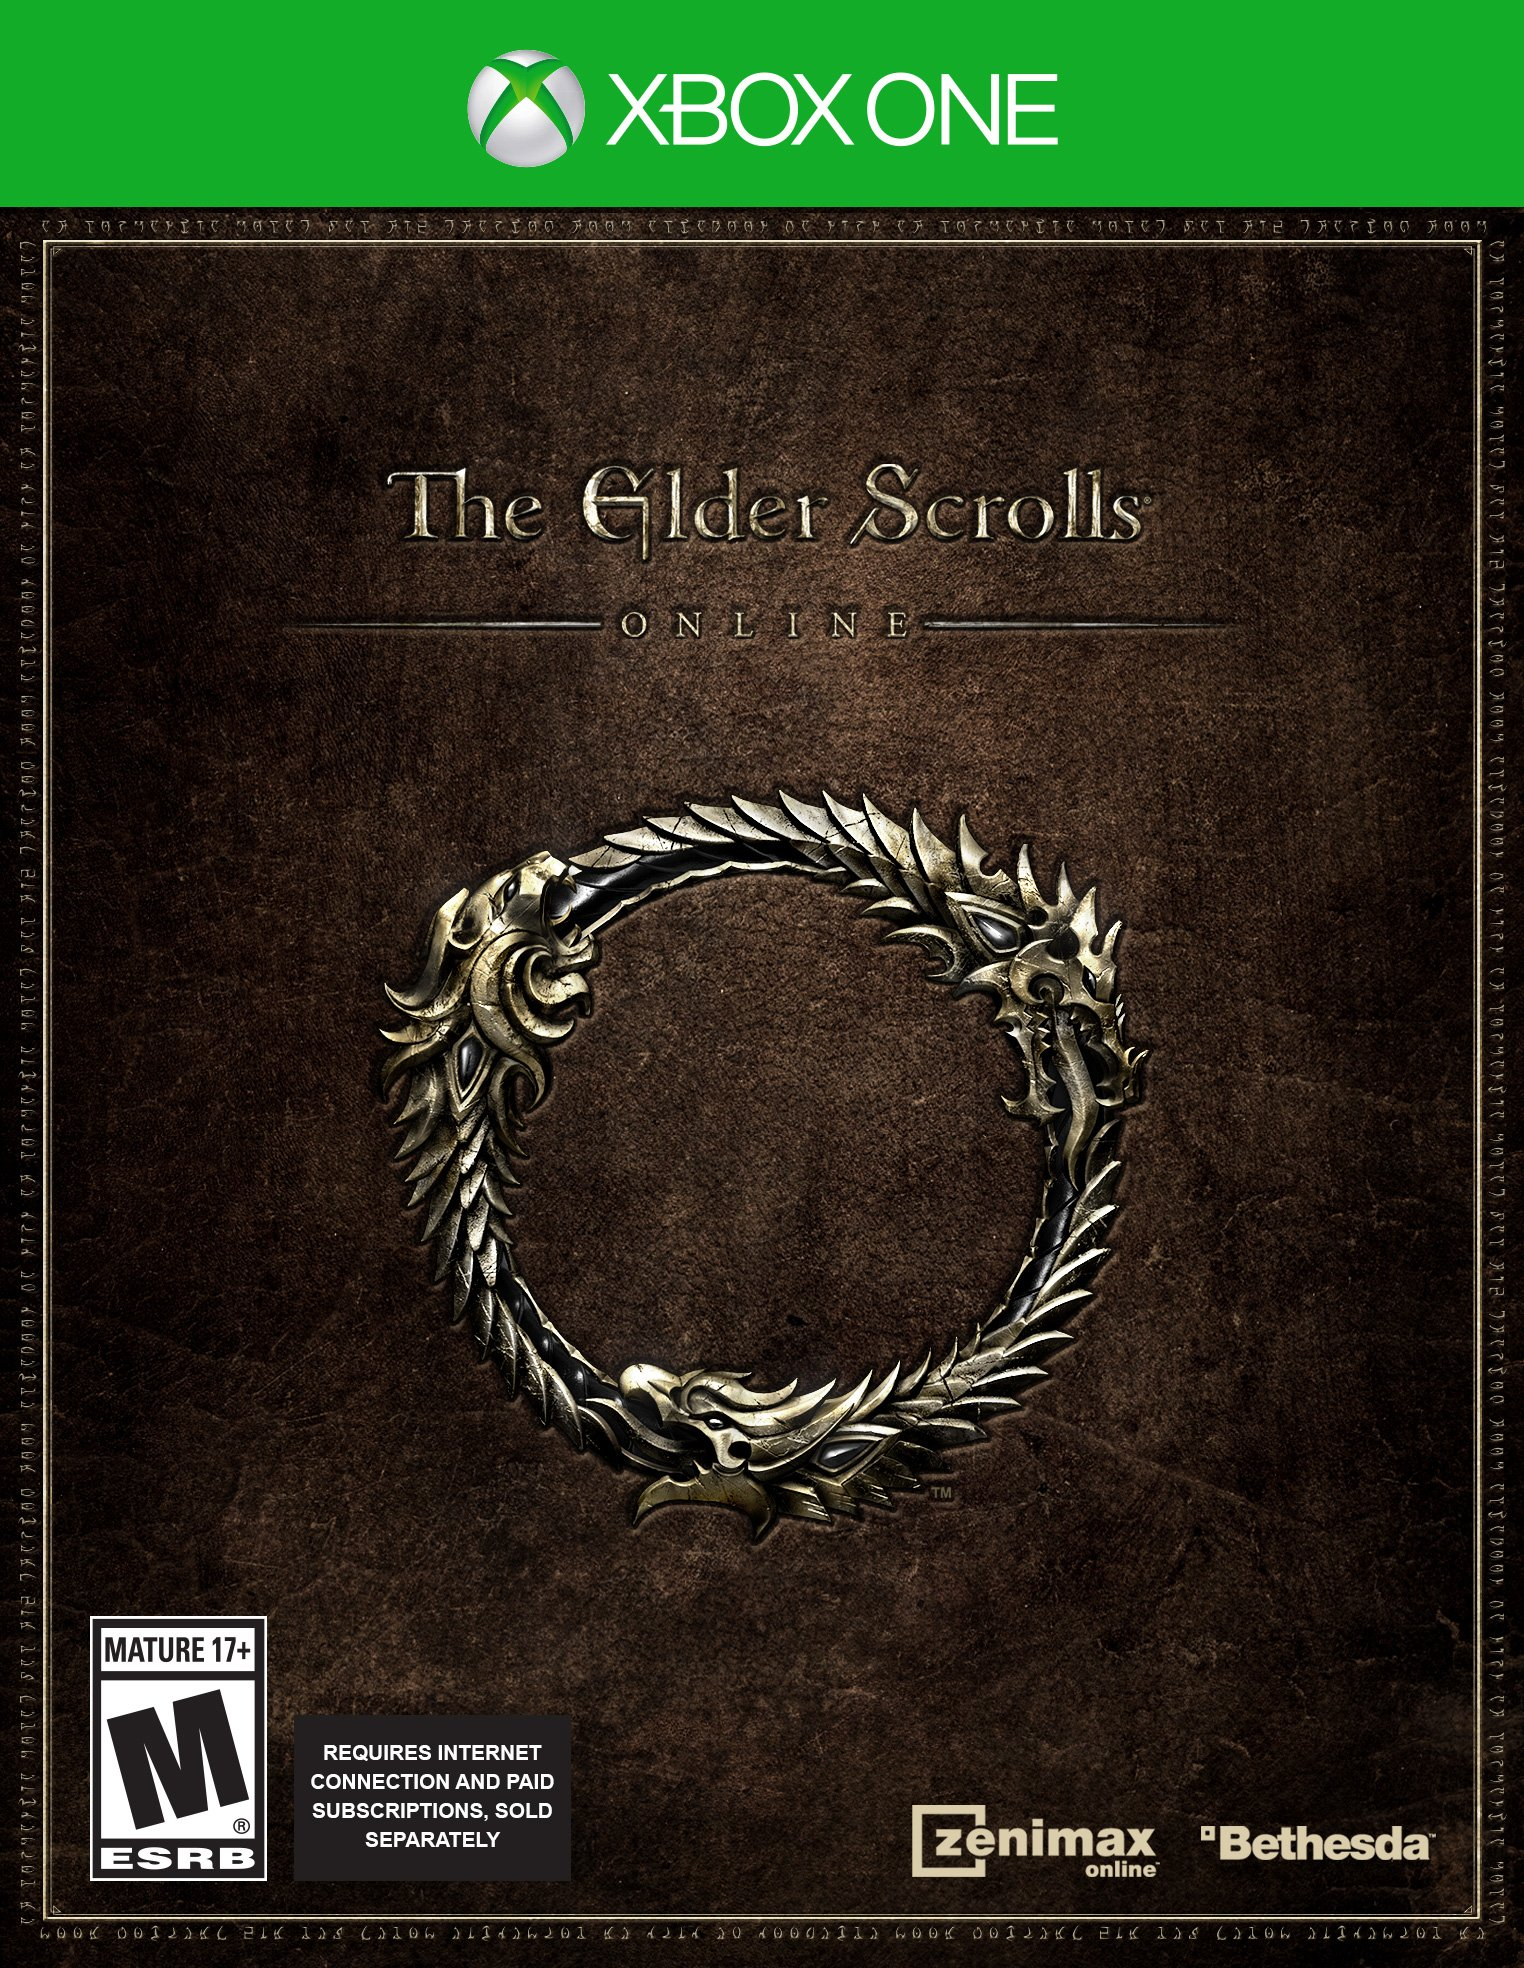 ... Elder Scrolls Online release date for PC this March followed by Xbox